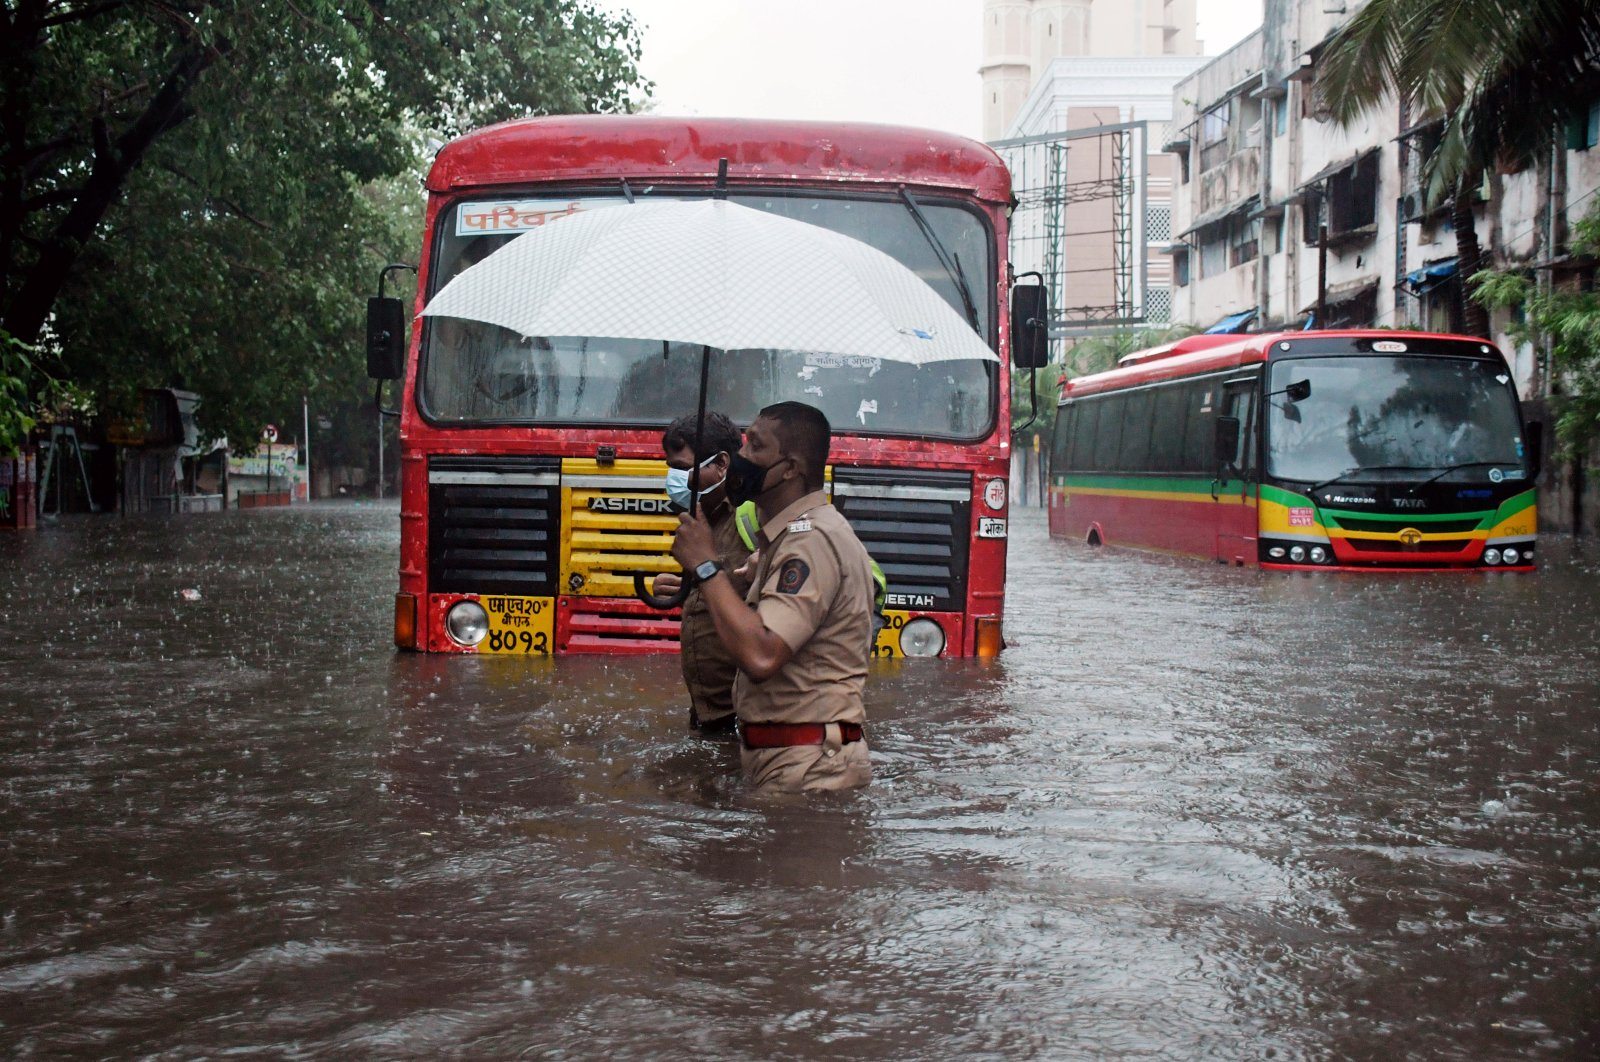 An Indian police officer helps a driver cross a street flooded by heavy rain caused by cyclone Tauktae in Mumbai, India, May 17, 2021. (EPA Photo)